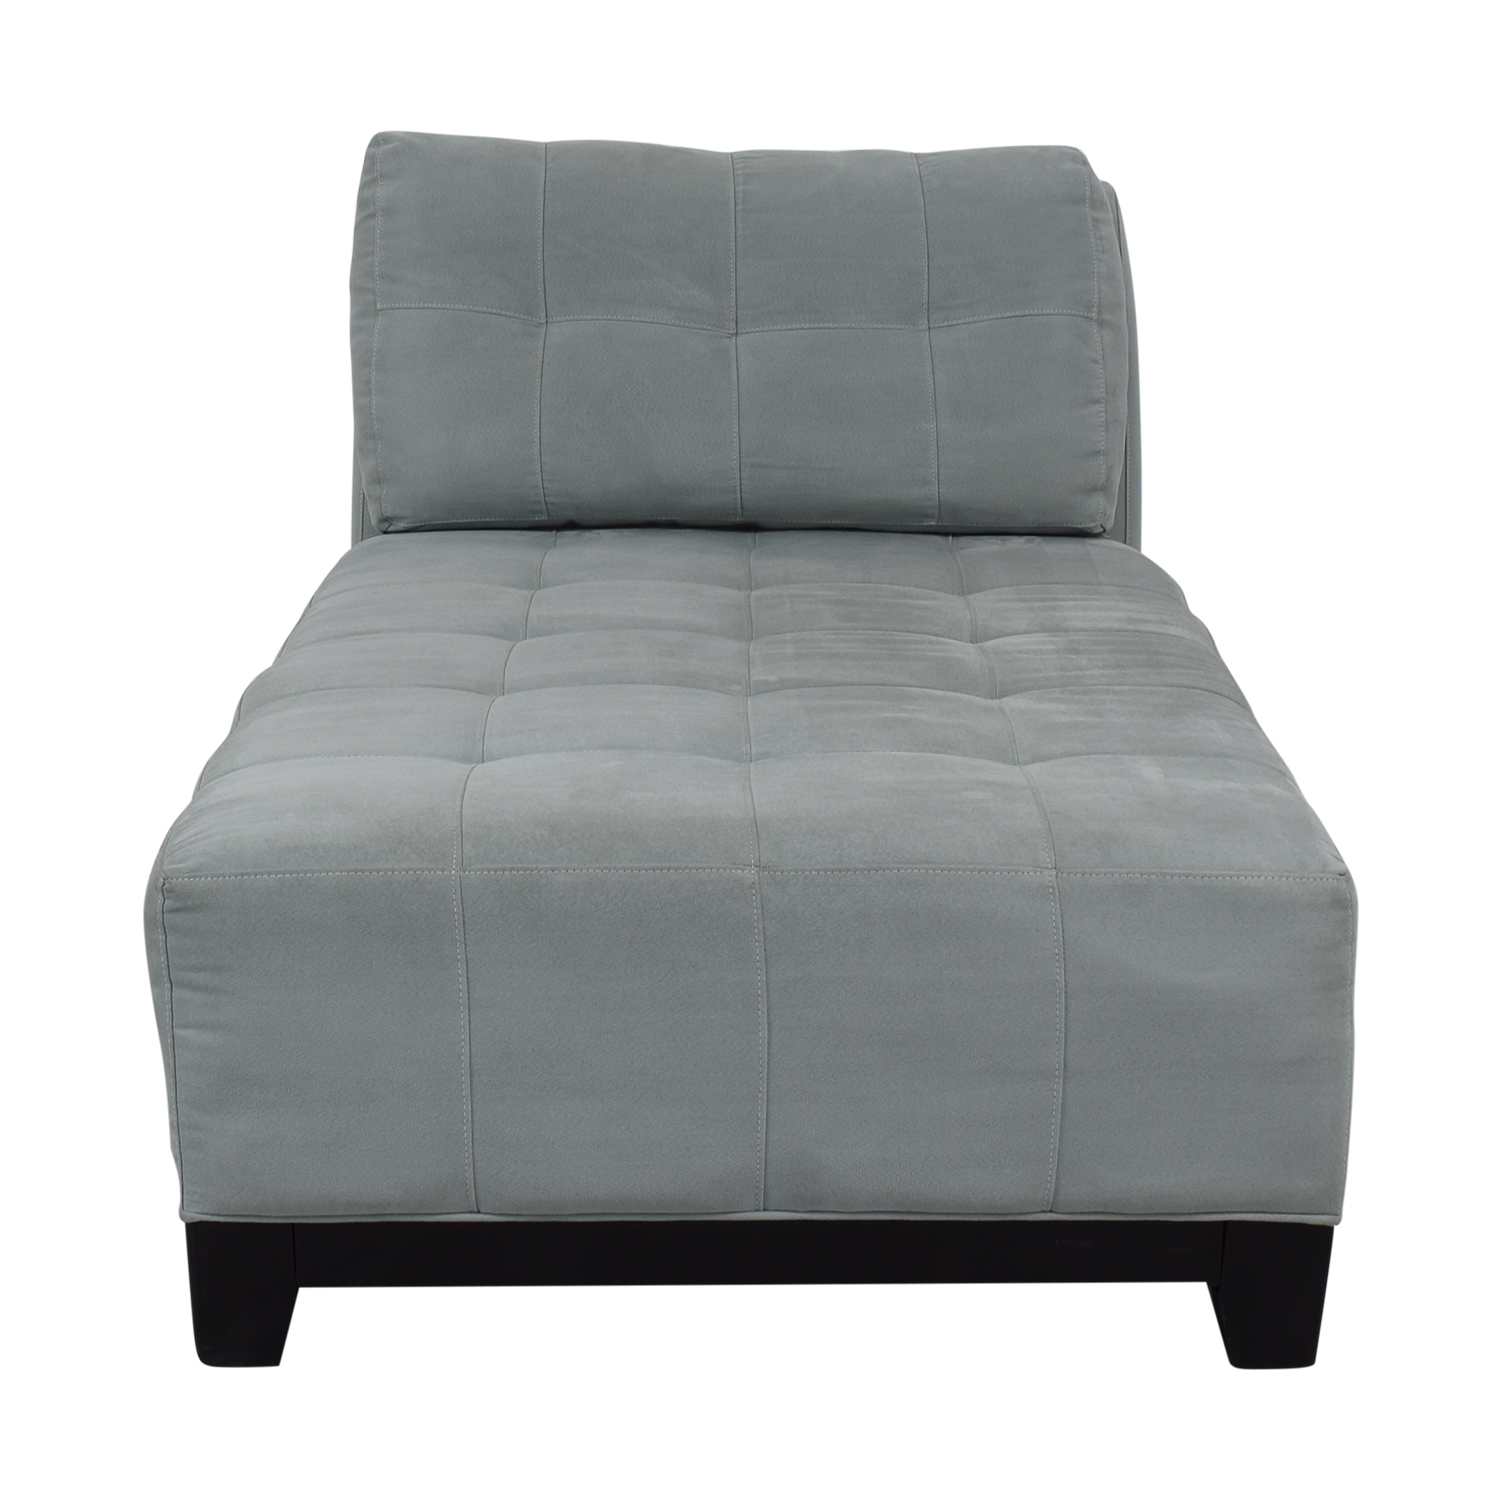 HM Richards Furniture HM Richards Furniture Chaise Lounge used